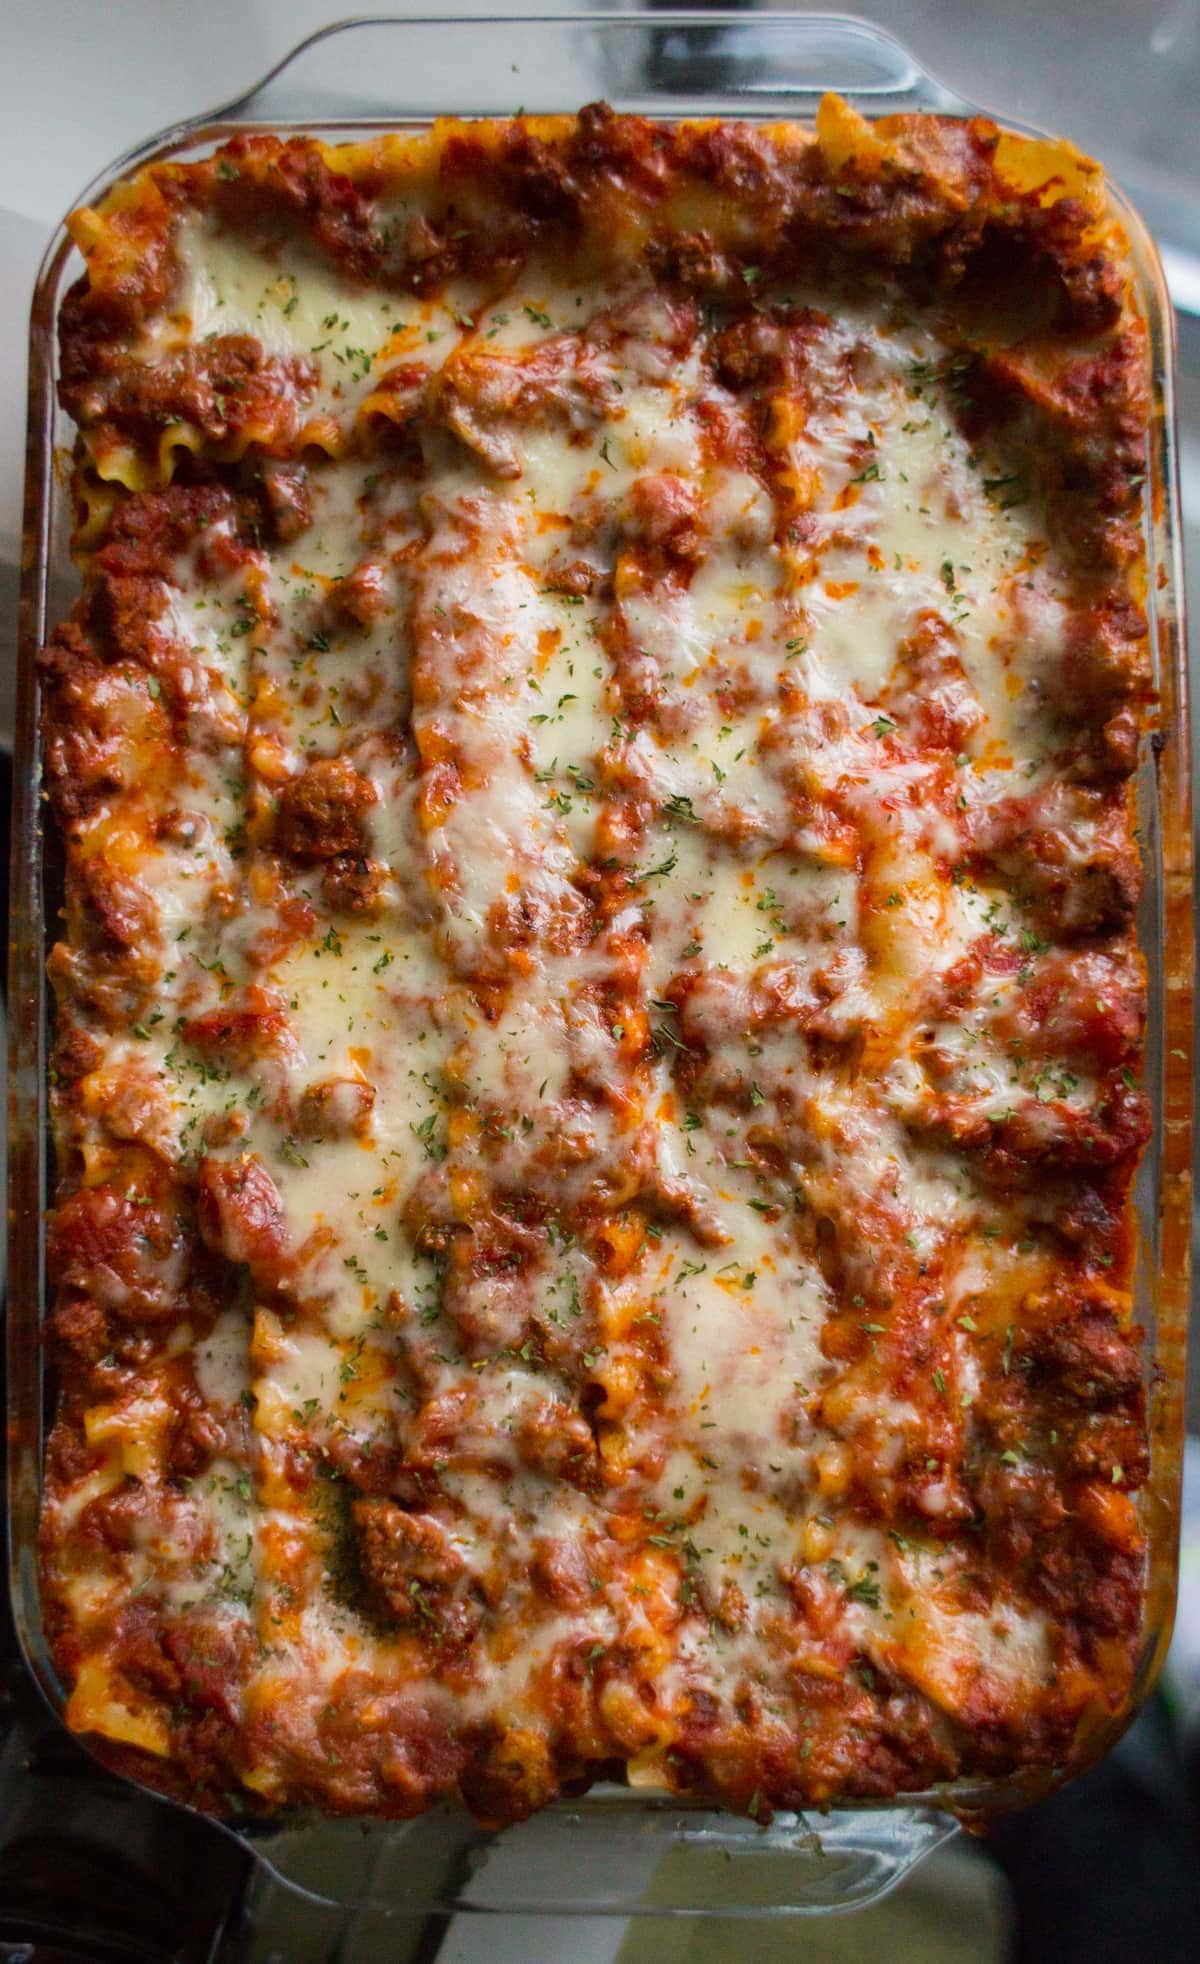 Top down view of lasagna in a glass baking dish